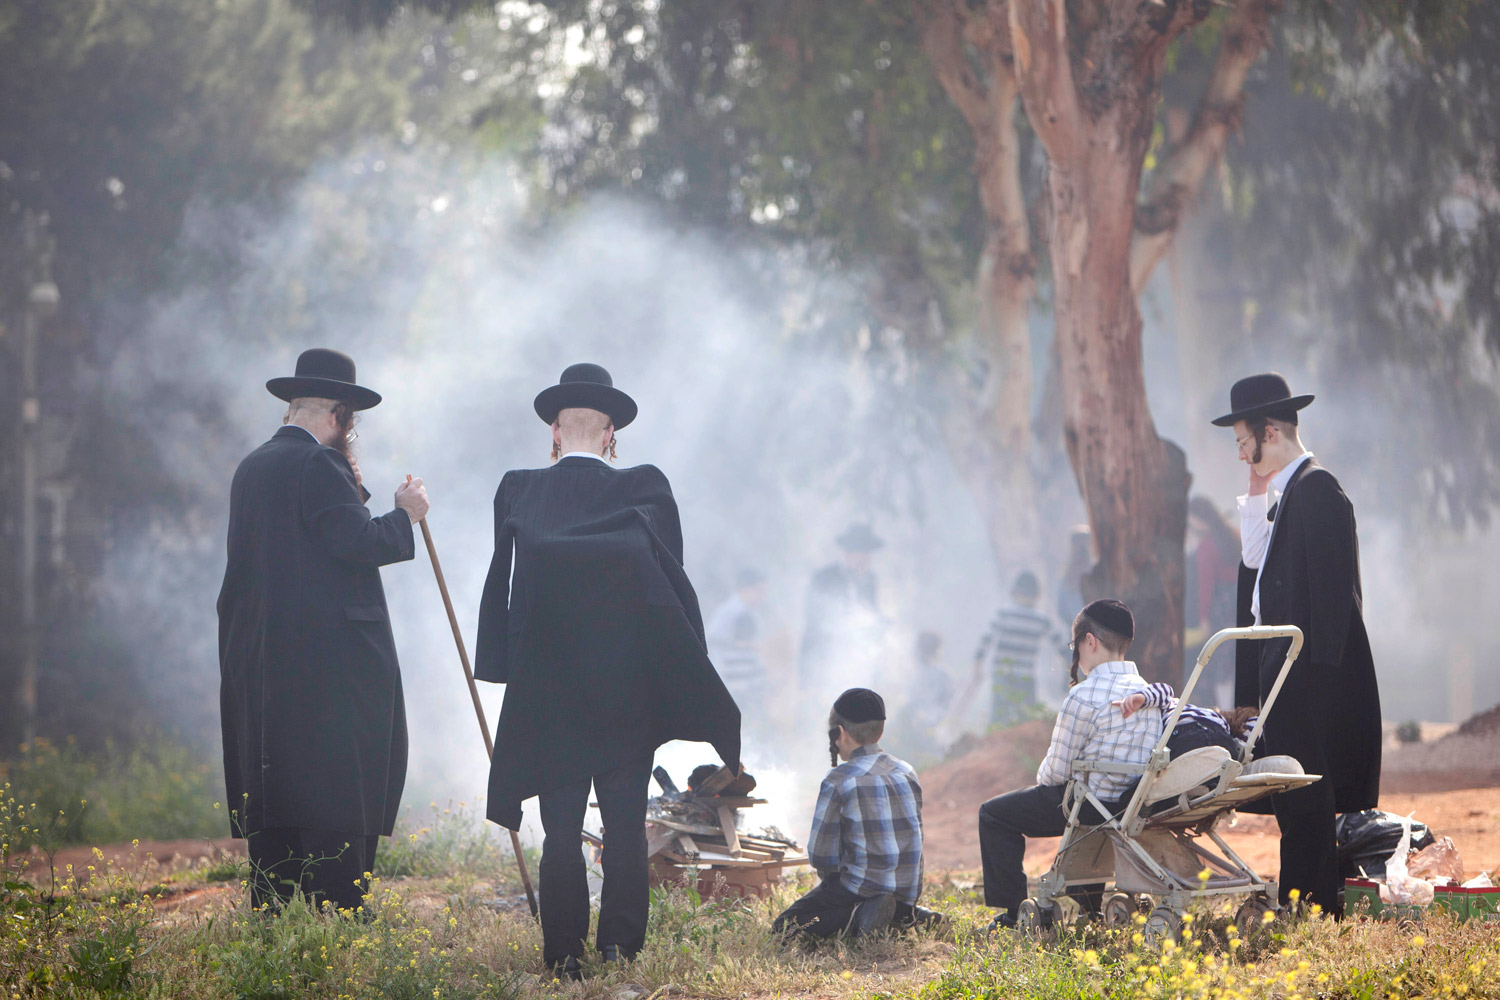 April 6, 2012. Ultra-Orthodox Jewish men burn leavened items in a final preparation before the Passover holiday in the ultra-Orthodox Jewish town of Bnei Brak, near Tel Aviv. Jews are forbidden to eat leavened foodstuffs during the Passover holiday.